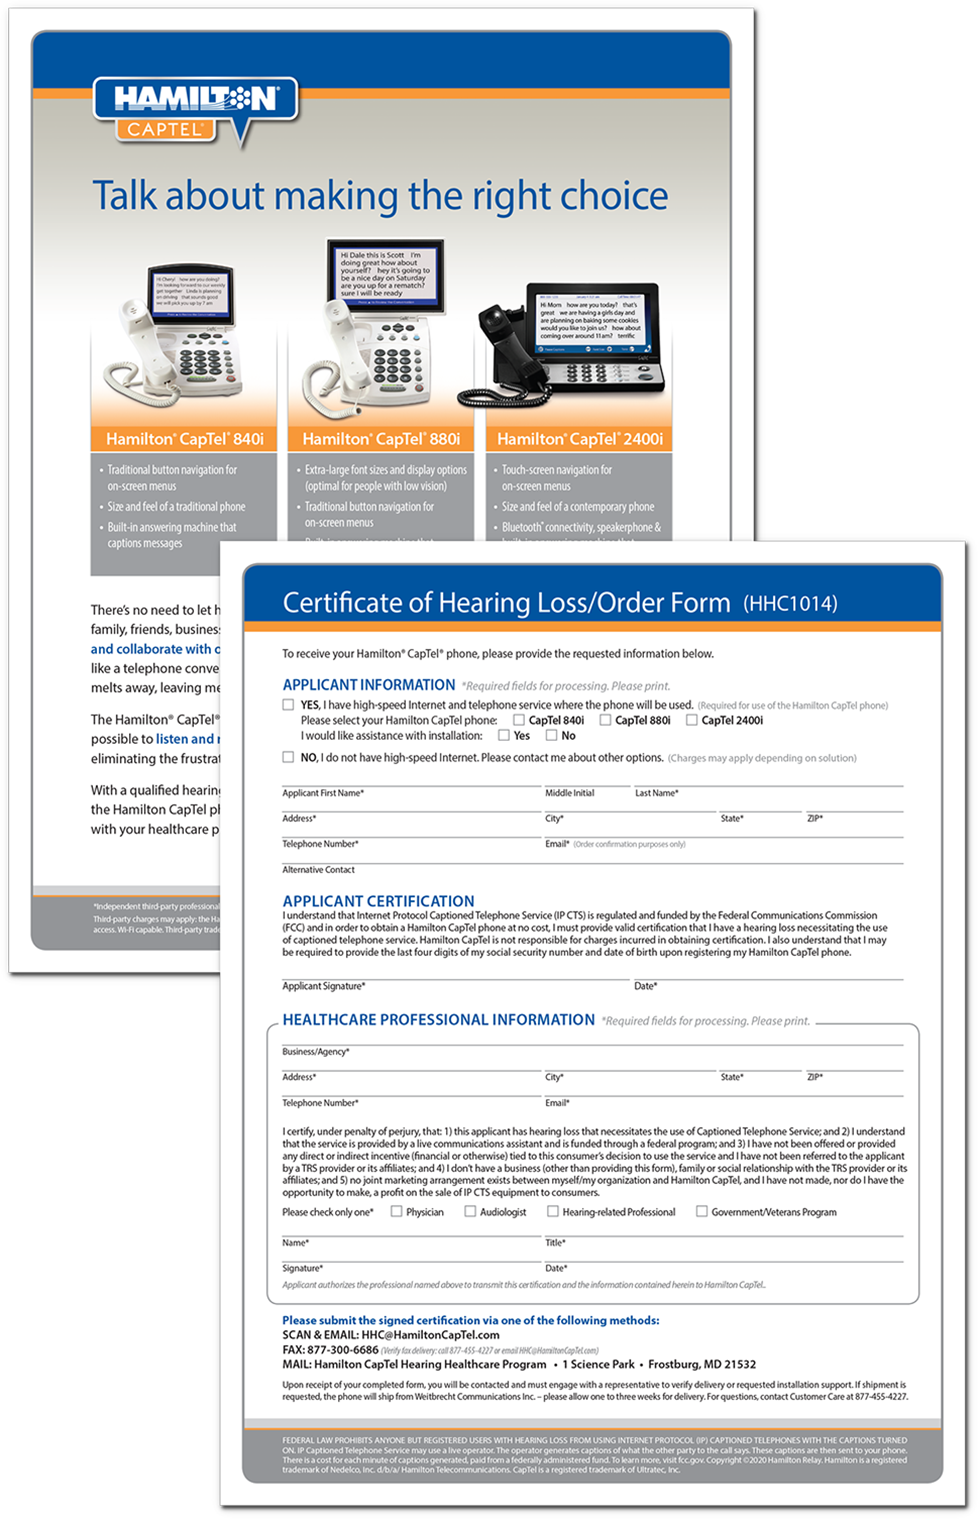 Hamilton CapTel Certificate of Hearing Loss/Order Form